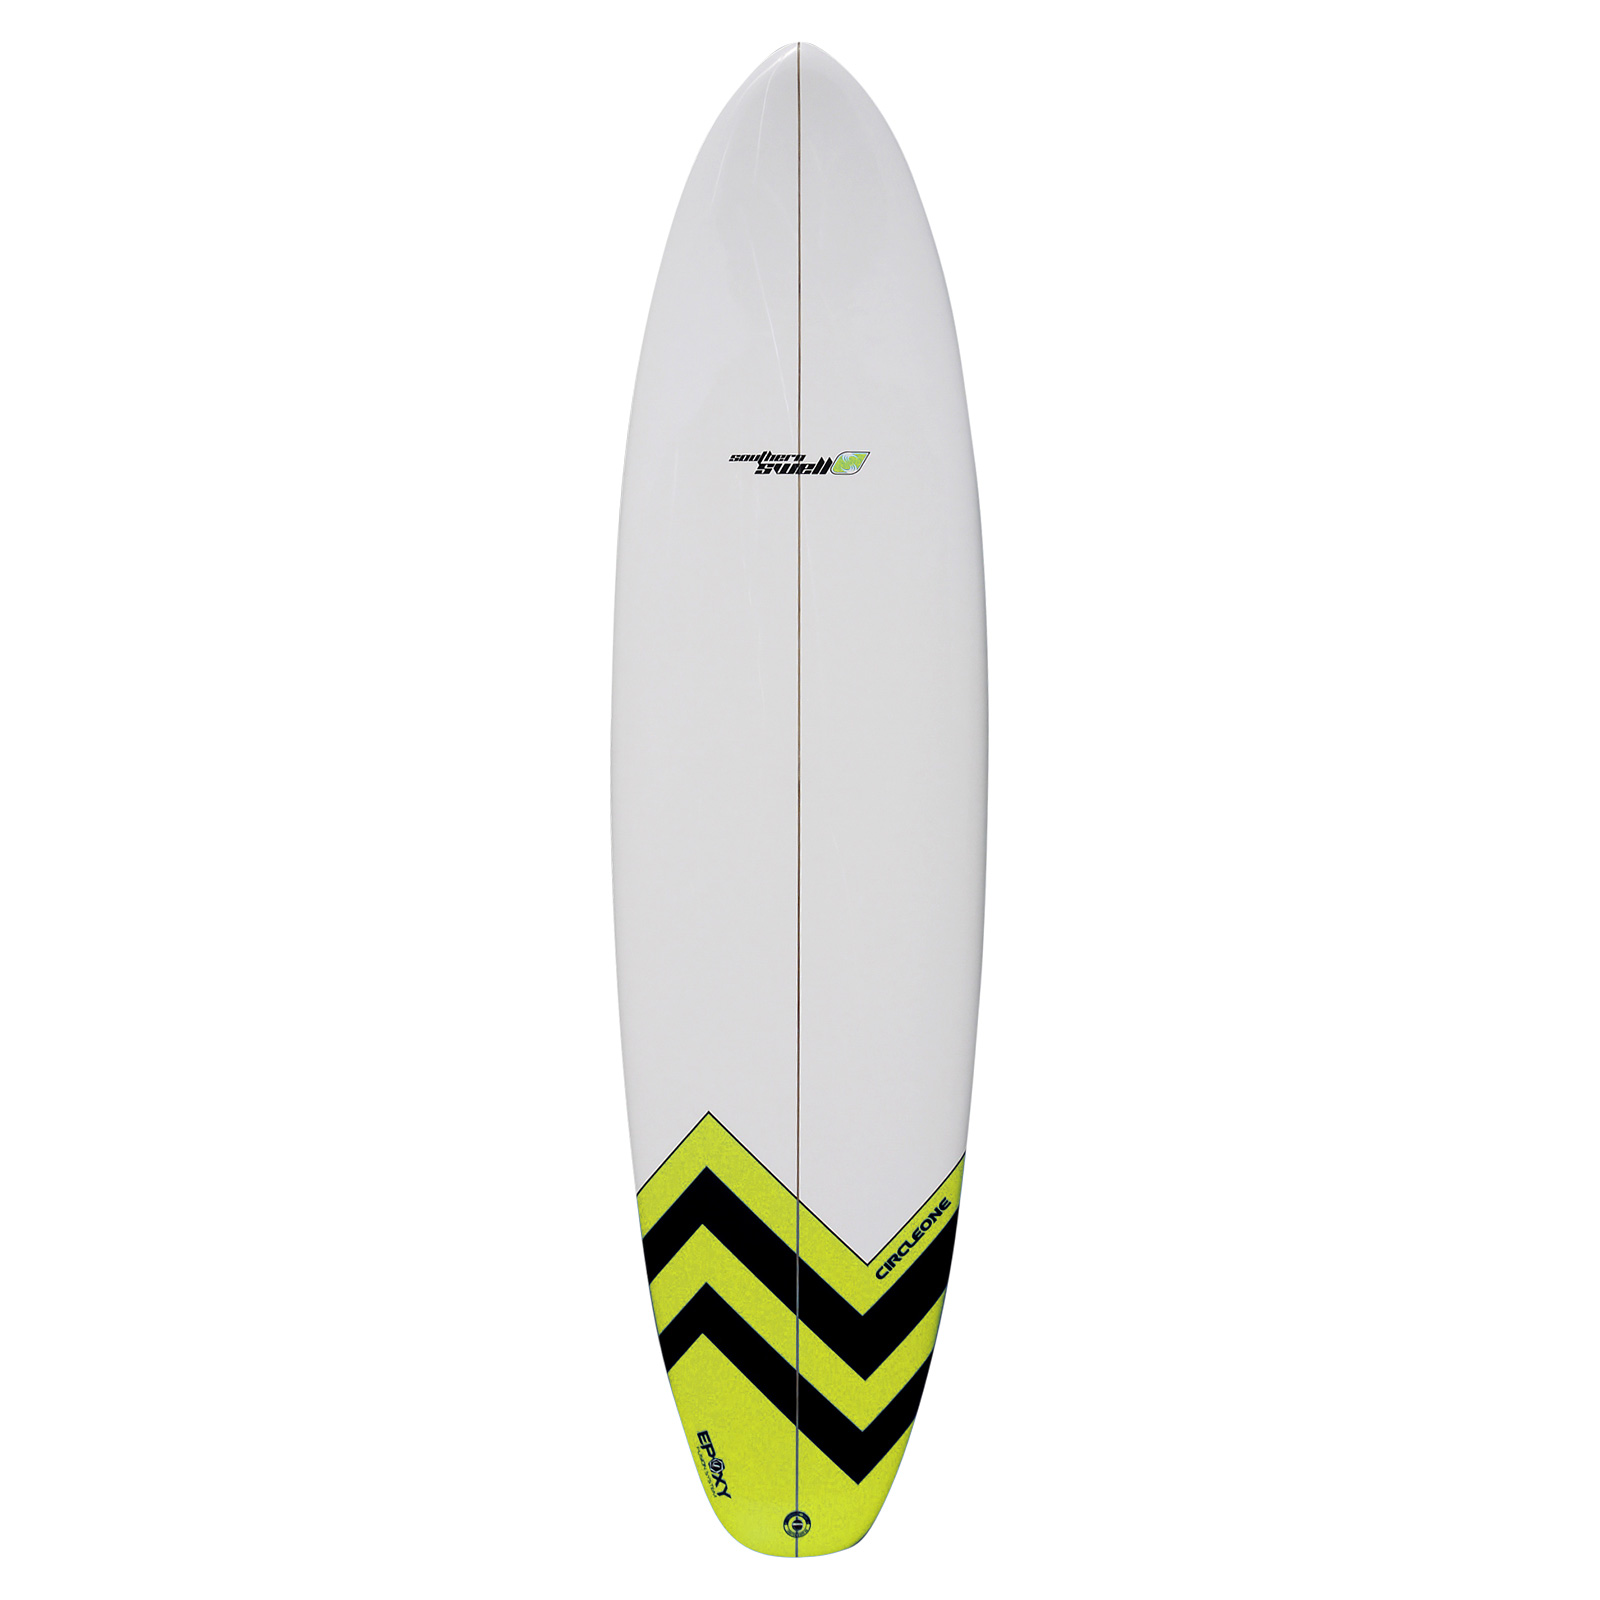 7ft 2inch Circle One Southern Swell Series Round Squash Tail Funboard Surfboard